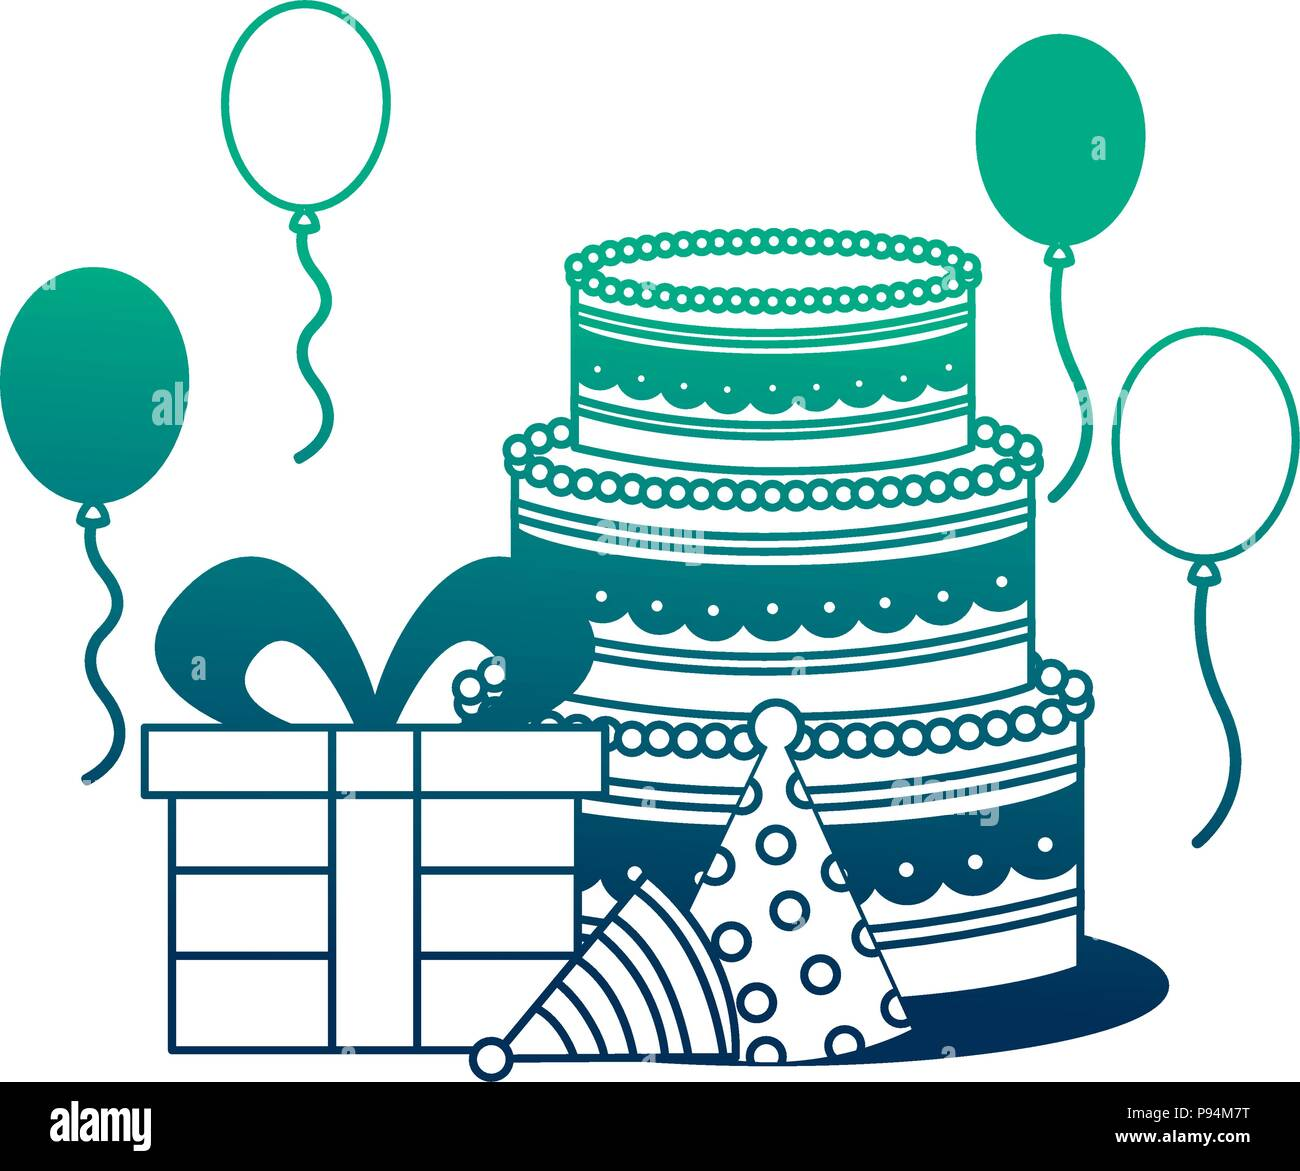 Groovy Birthday Cake And Cupcakes Candles Decoration Vector Illustration Funny Birthday Cards Online Necthendildamsfinfo